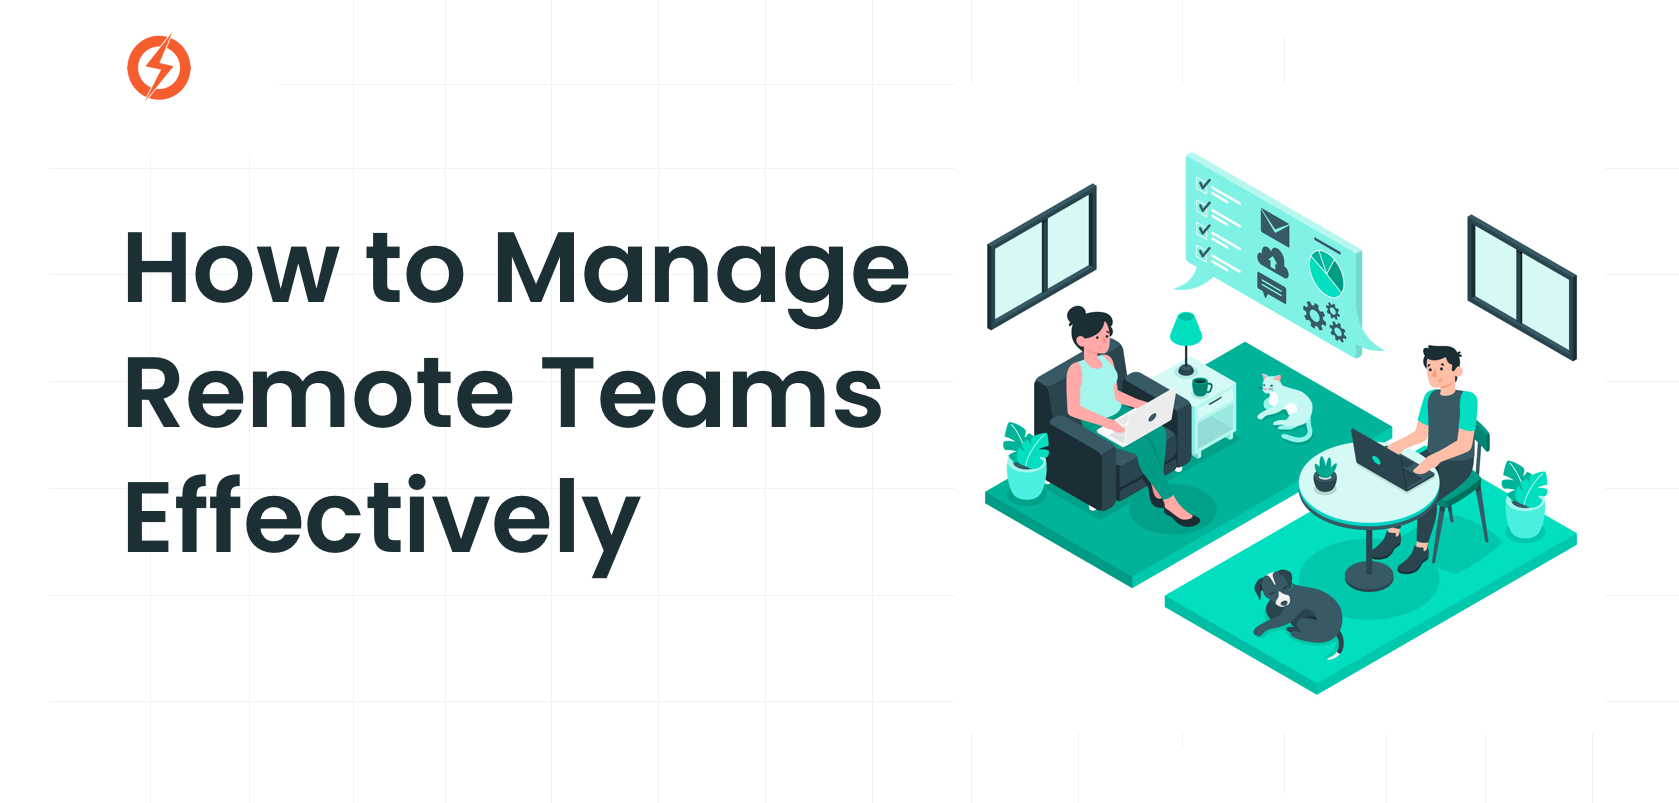 How to Manage Remote Teams Effectively